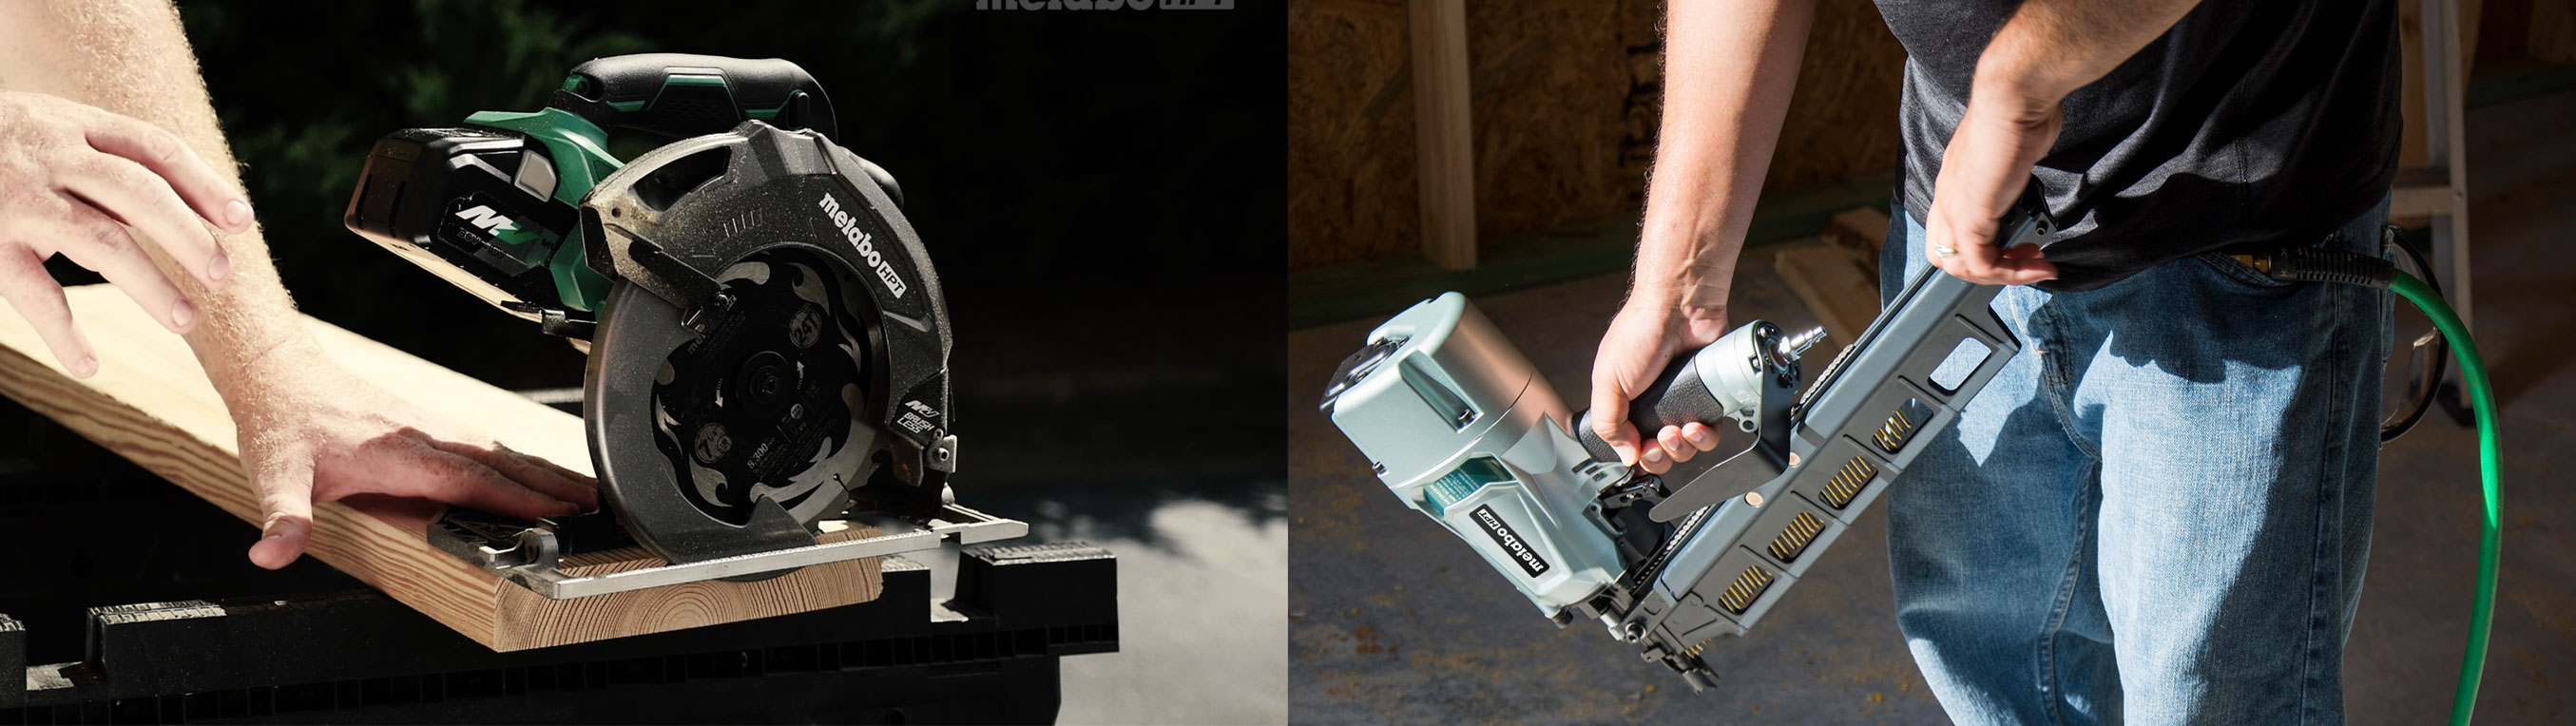 Metabo HPT Power Tools